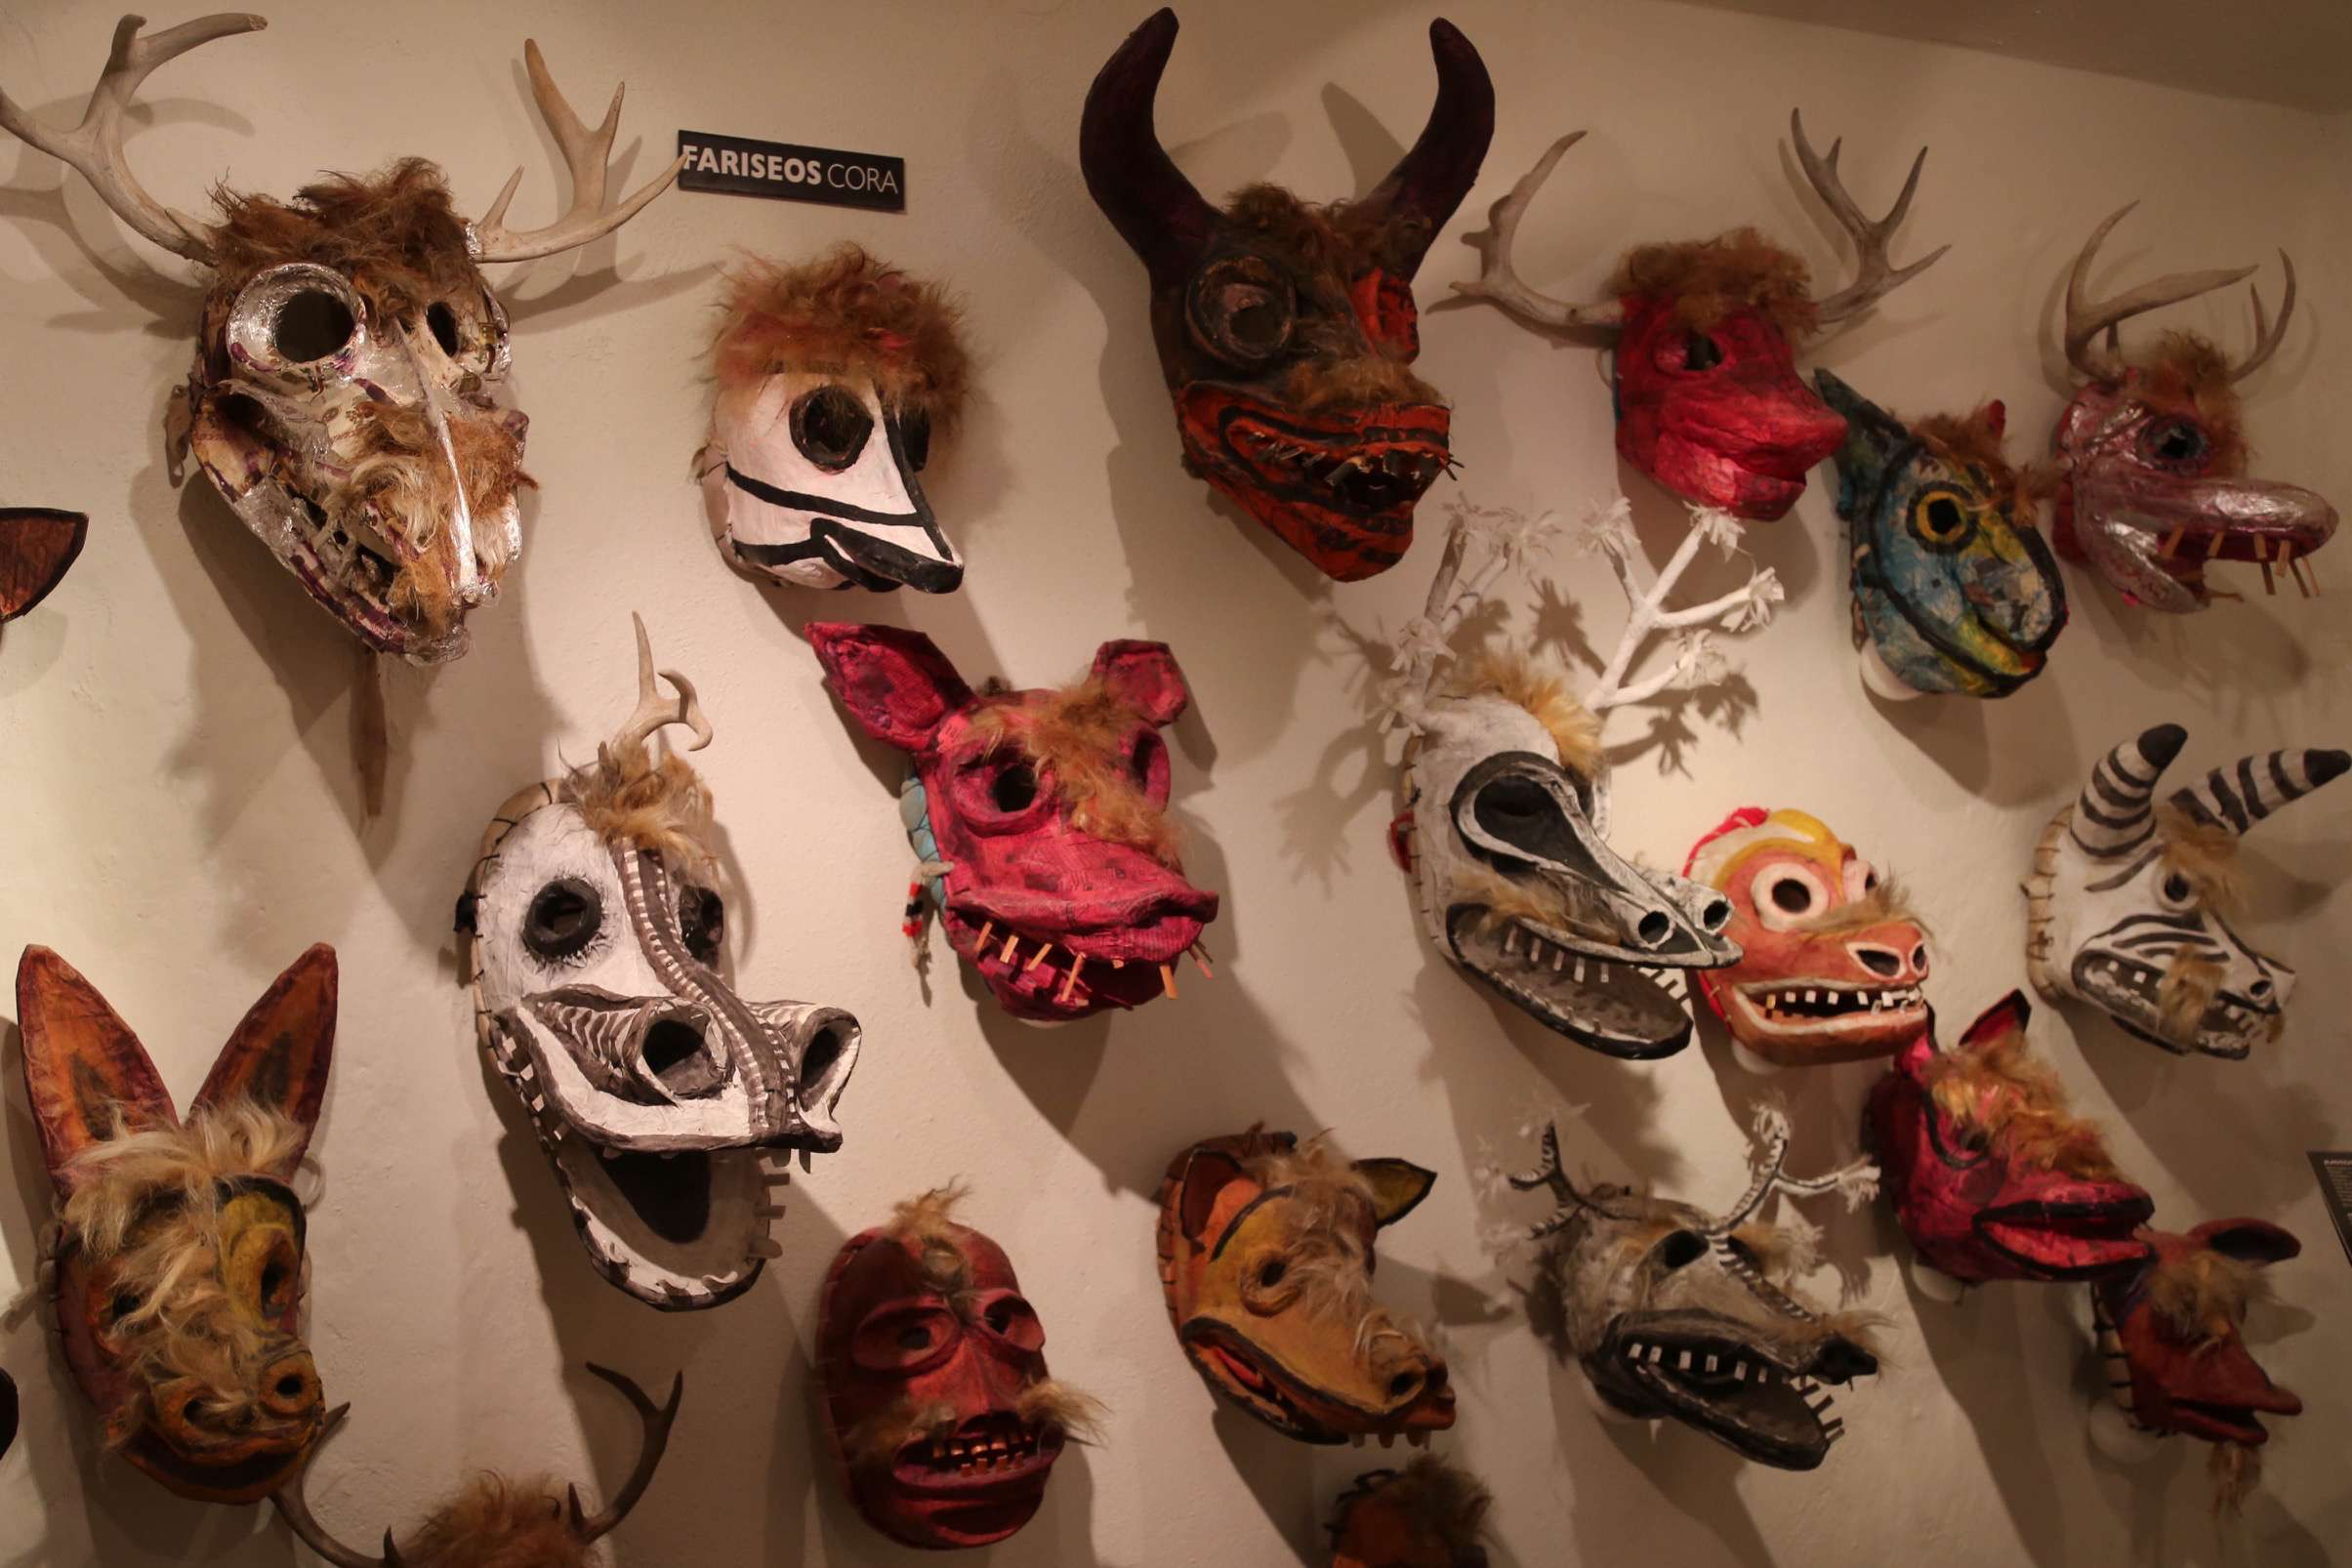 Masks are representative and transformative to evoke emotions during fiestas and celebrations.